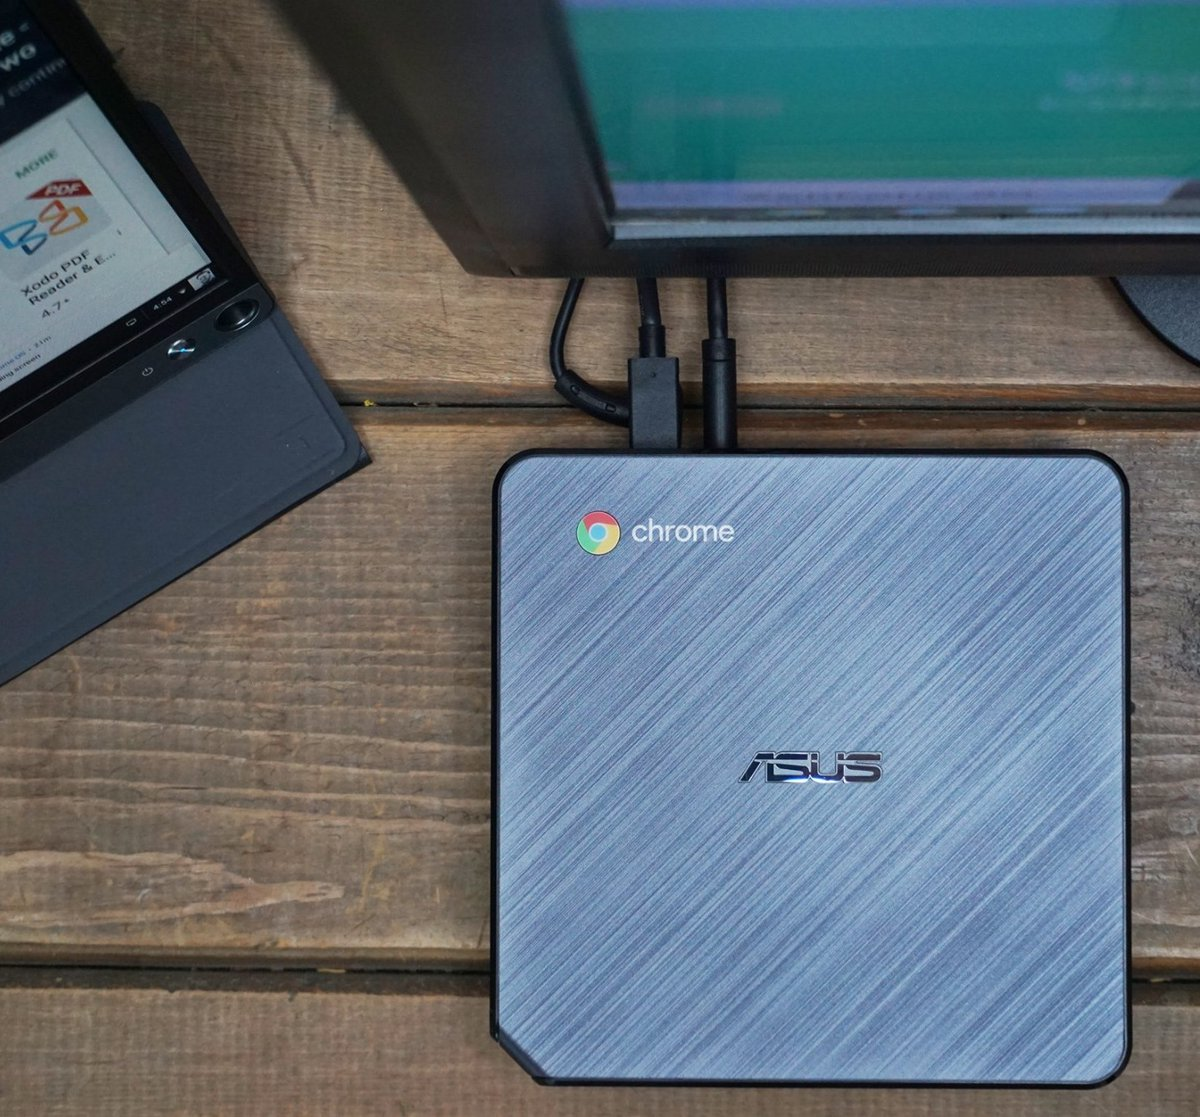 From your office to the living room, the ASUS #Chromebox3 is flexible, fast, and fully featured with virtually no configuration involved; you can be writing, collaborating, streaming, or playing your favorite Android games within minutes of setup.  💡https://t.co/BsXpPMJaIK https://t.co/VRuCZUGQKD